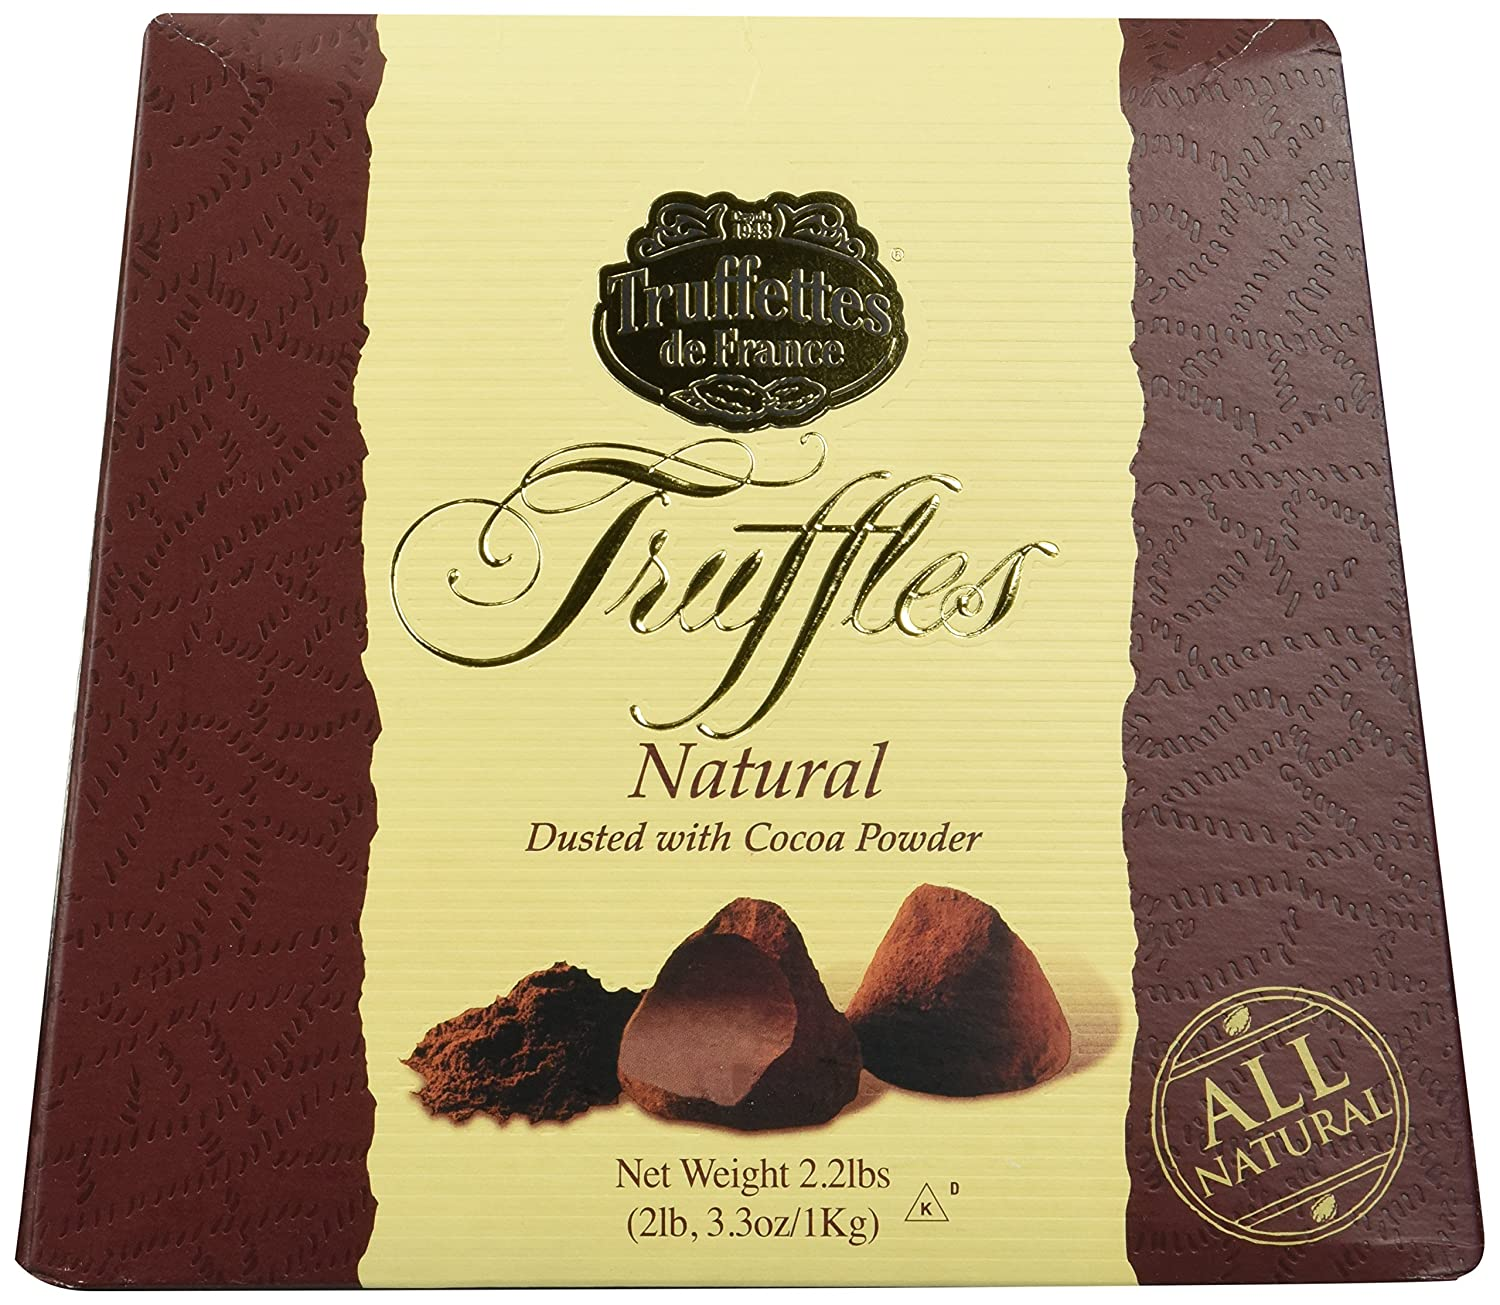 Chocmod Truffettes de France 2.2lbs mart All Truffles Beauty products Natural i 1Kg